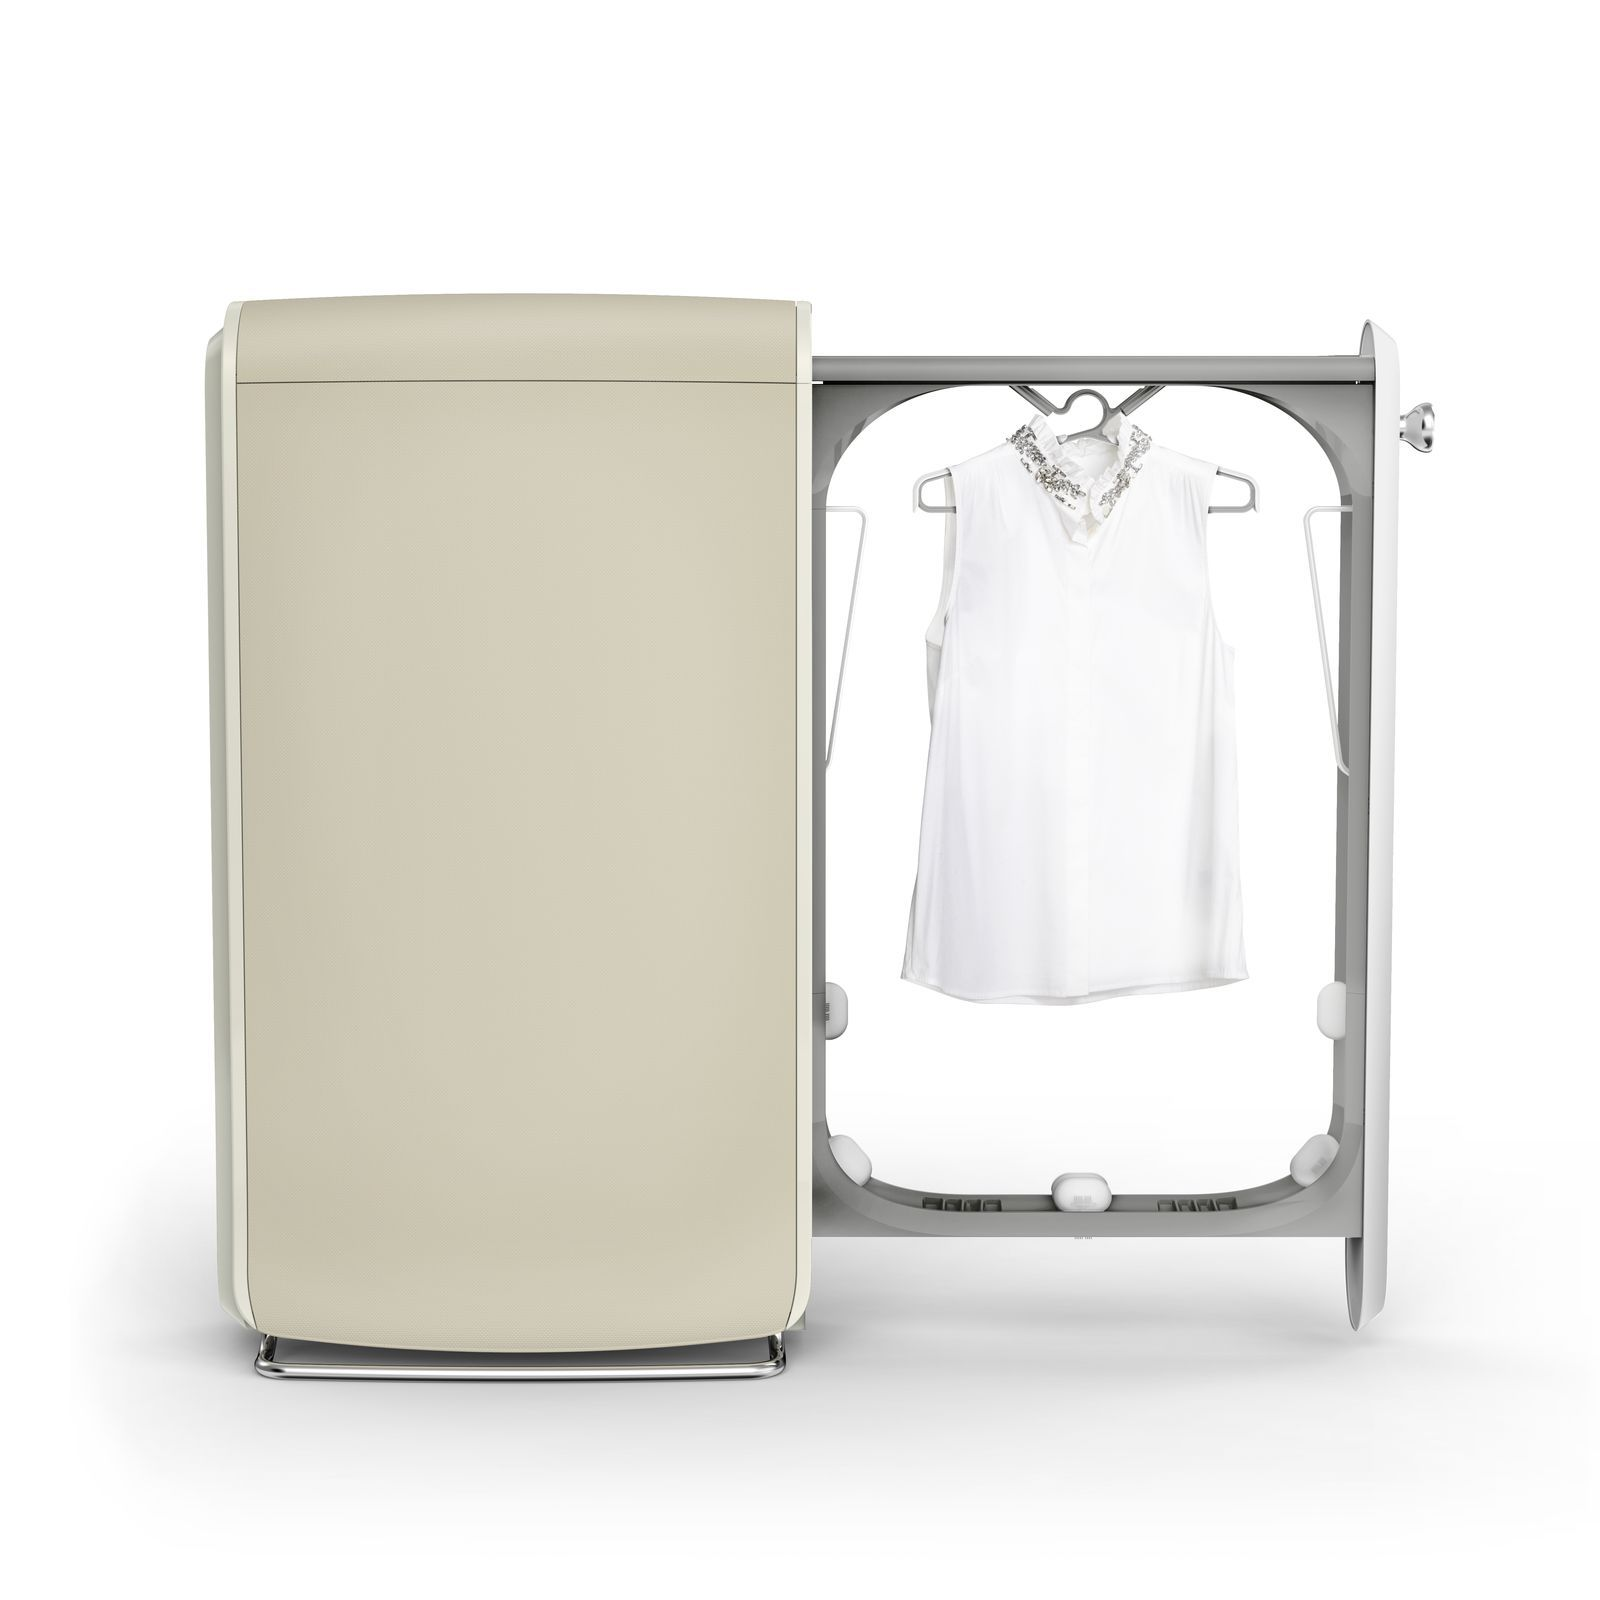 Swash SFF1000CLN Express Clothing Care System - Linen